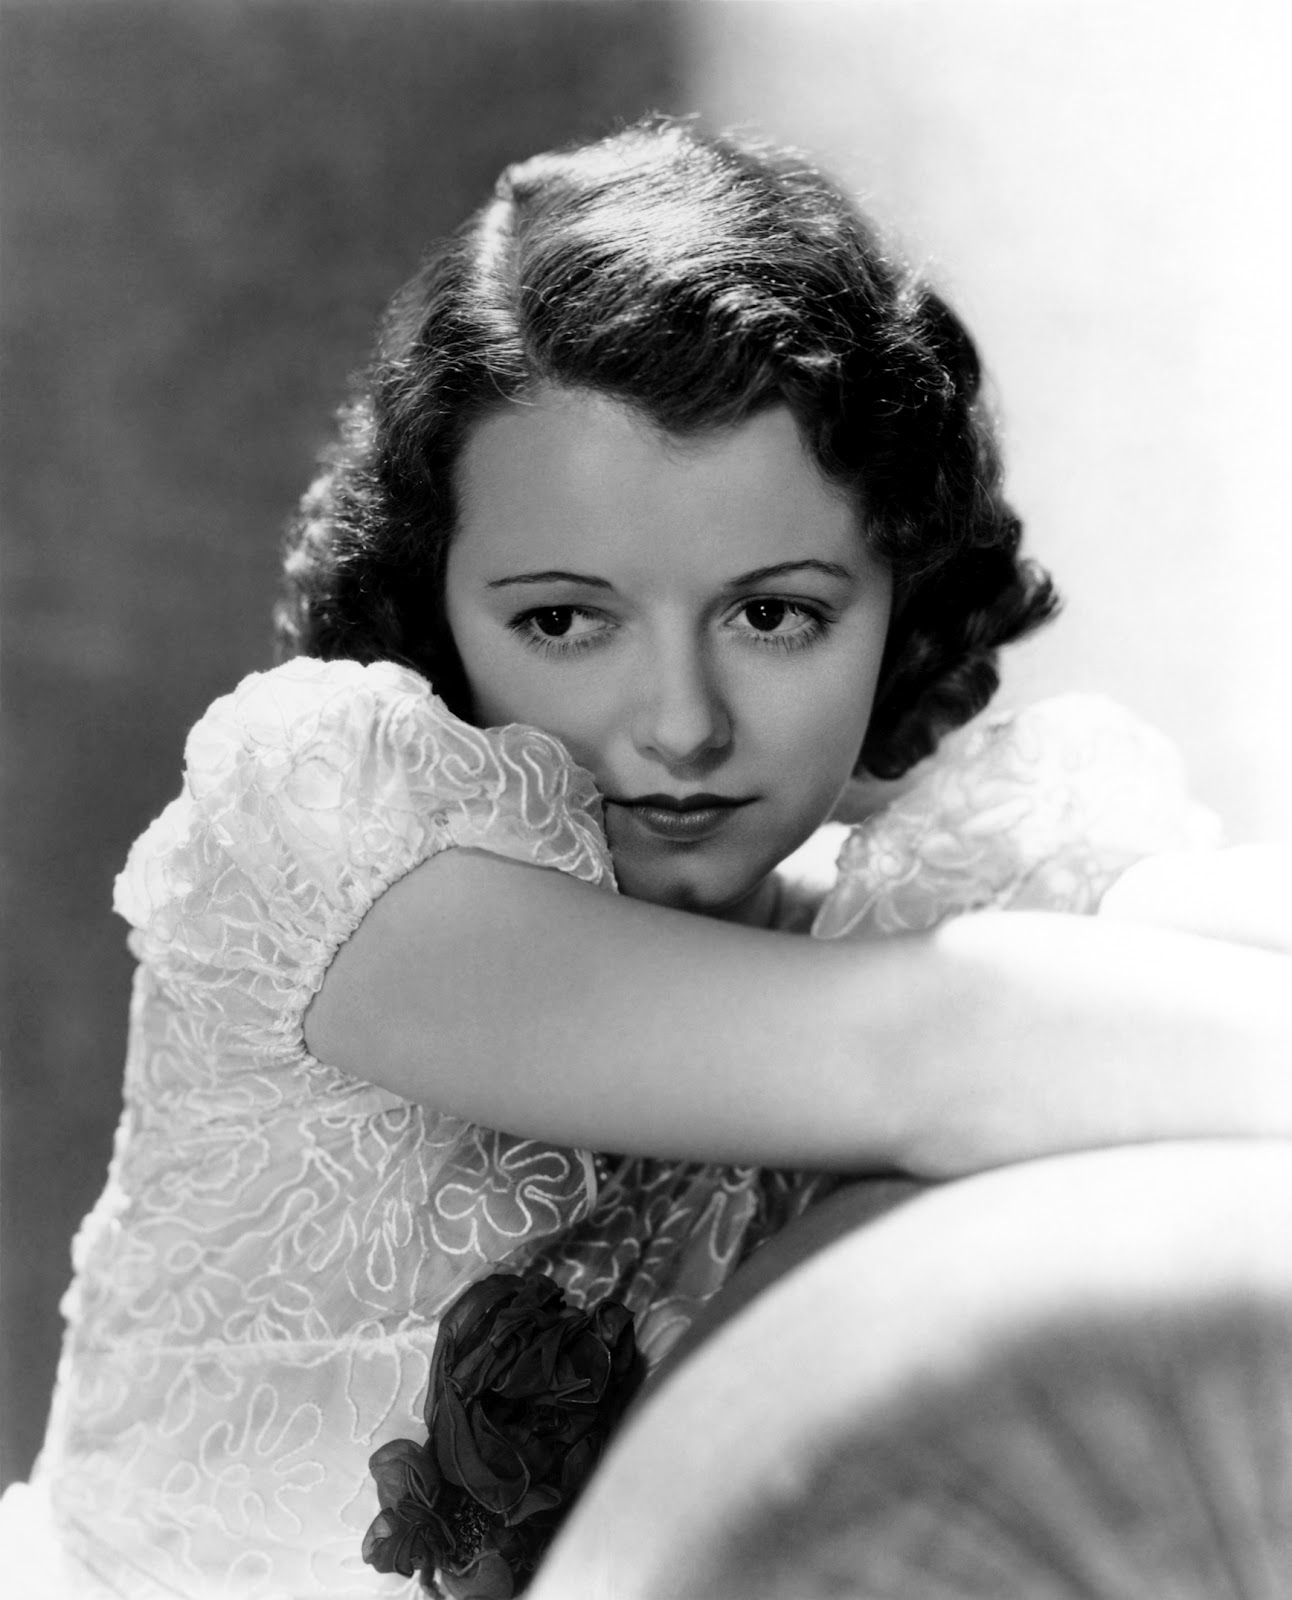 Discussion on this topic: Mari Shirato, janet-gaynor/